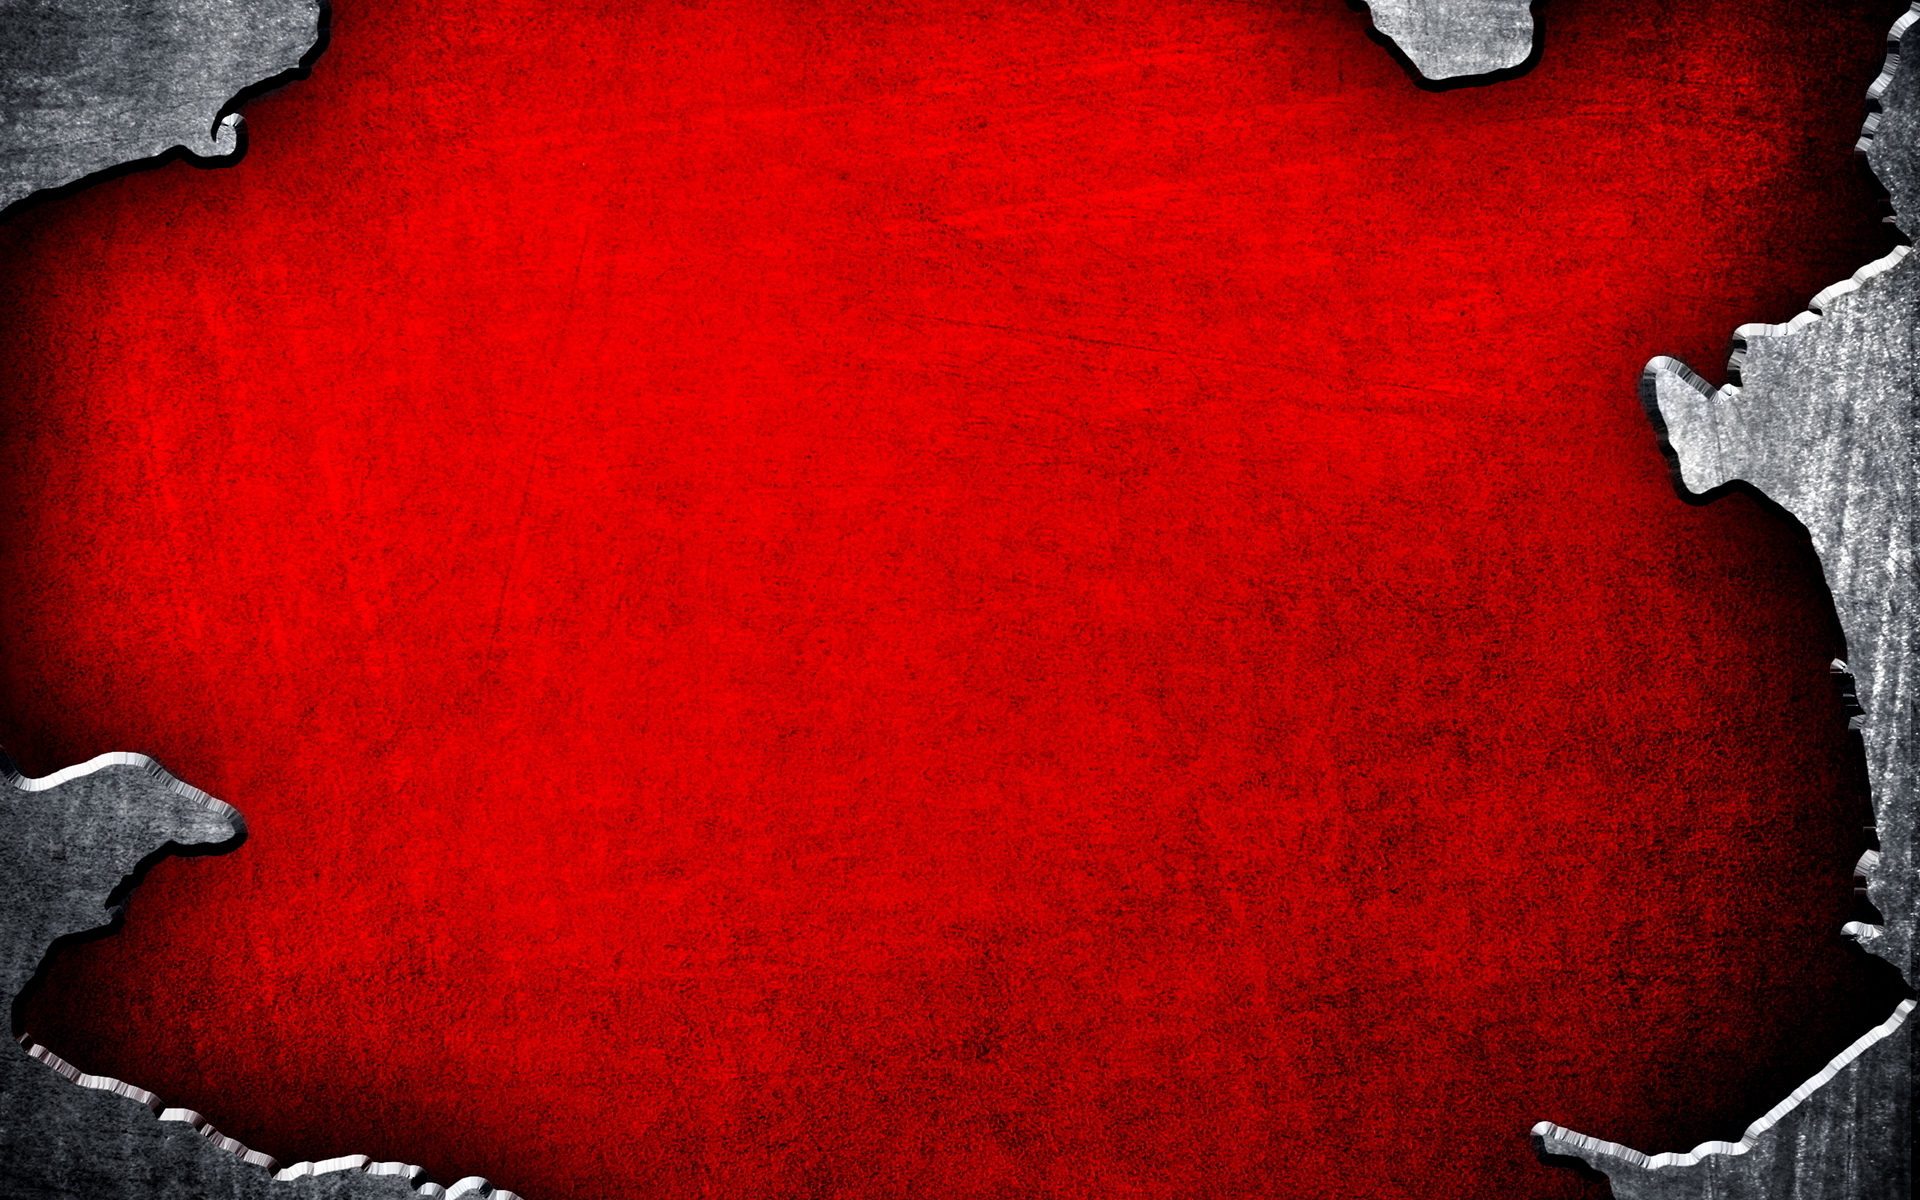 Download wallpaper texture background red metallic desktop 1920x1200